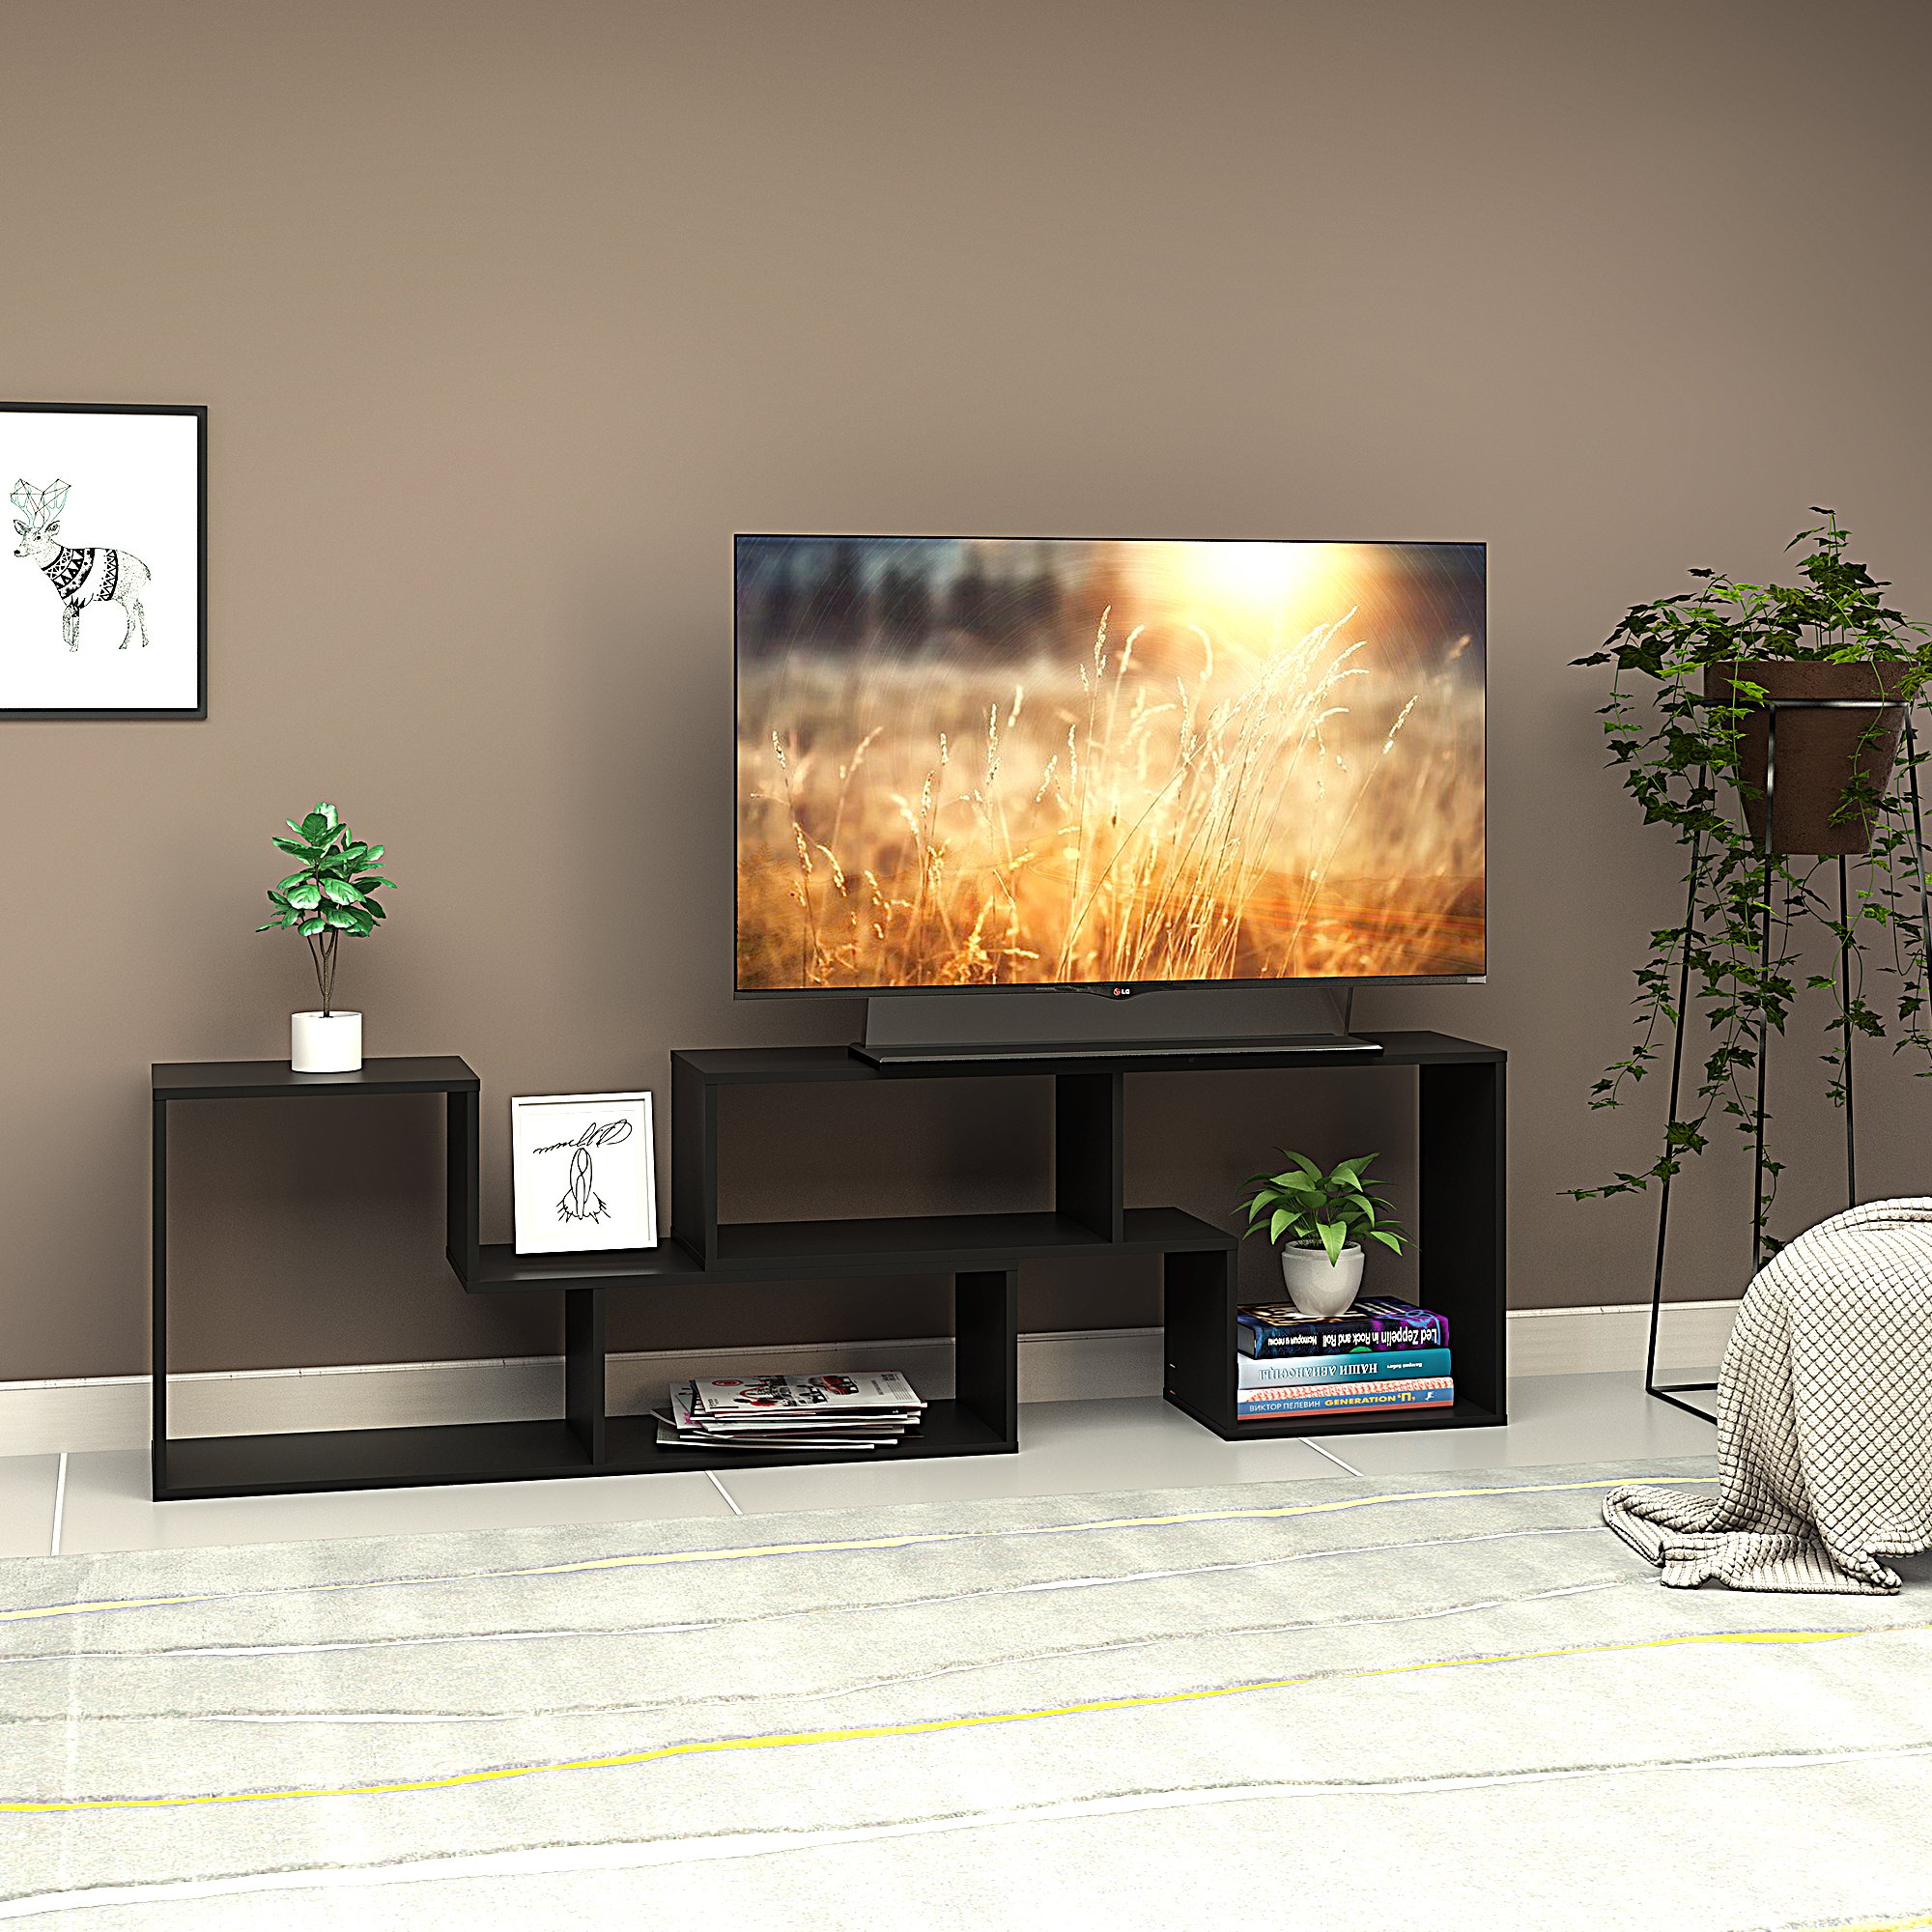 DEVAISE 2-Piece TV Stand - Television Console Cabinet for 22'' - 60'',Multifunctional Shelf - Black